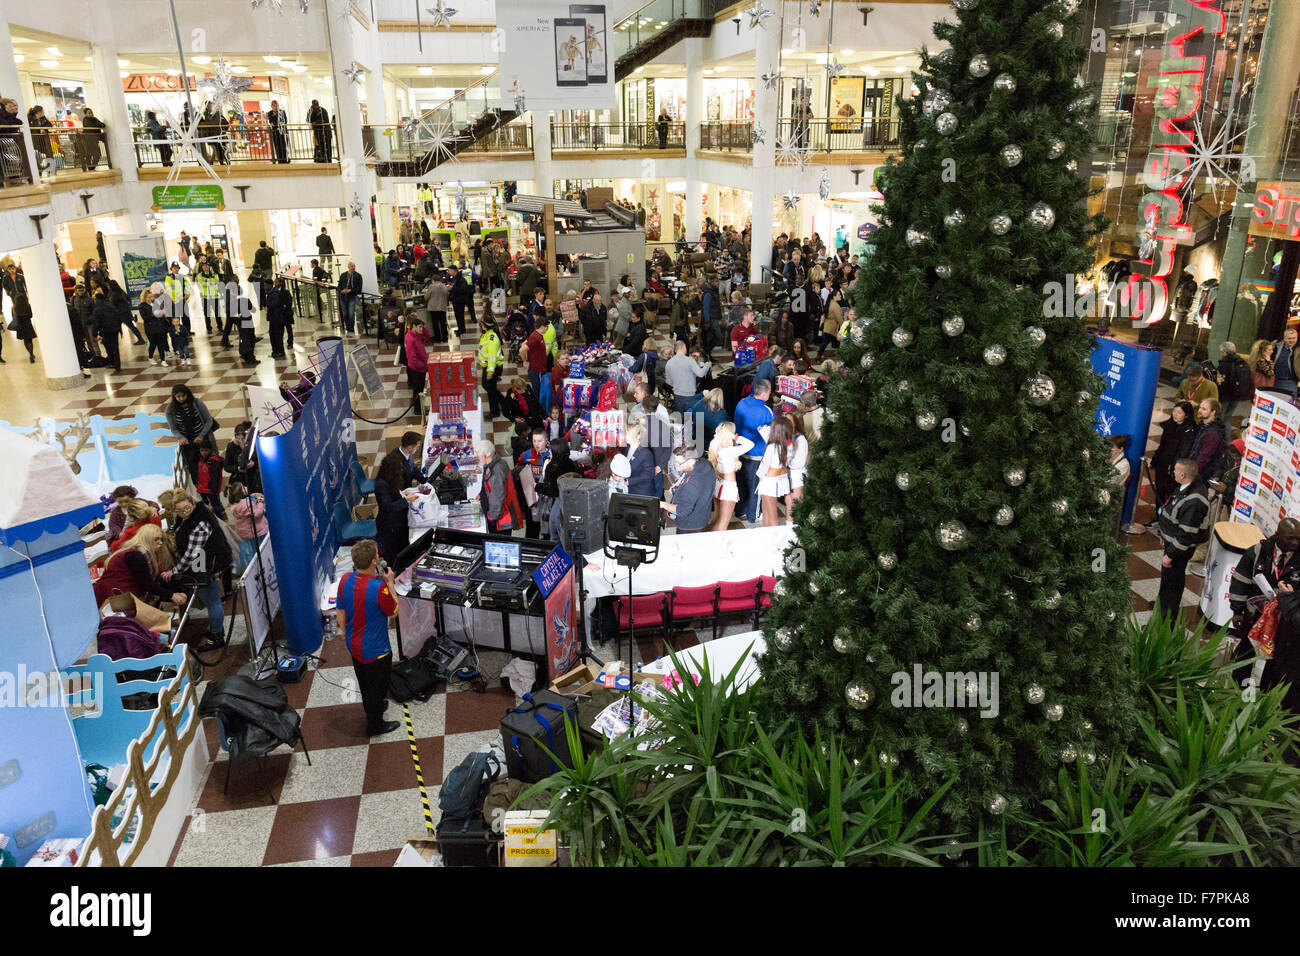 fc2f766ec10 Crystal Palace football club supporters at a Christmas event in the  Whitgift Centre